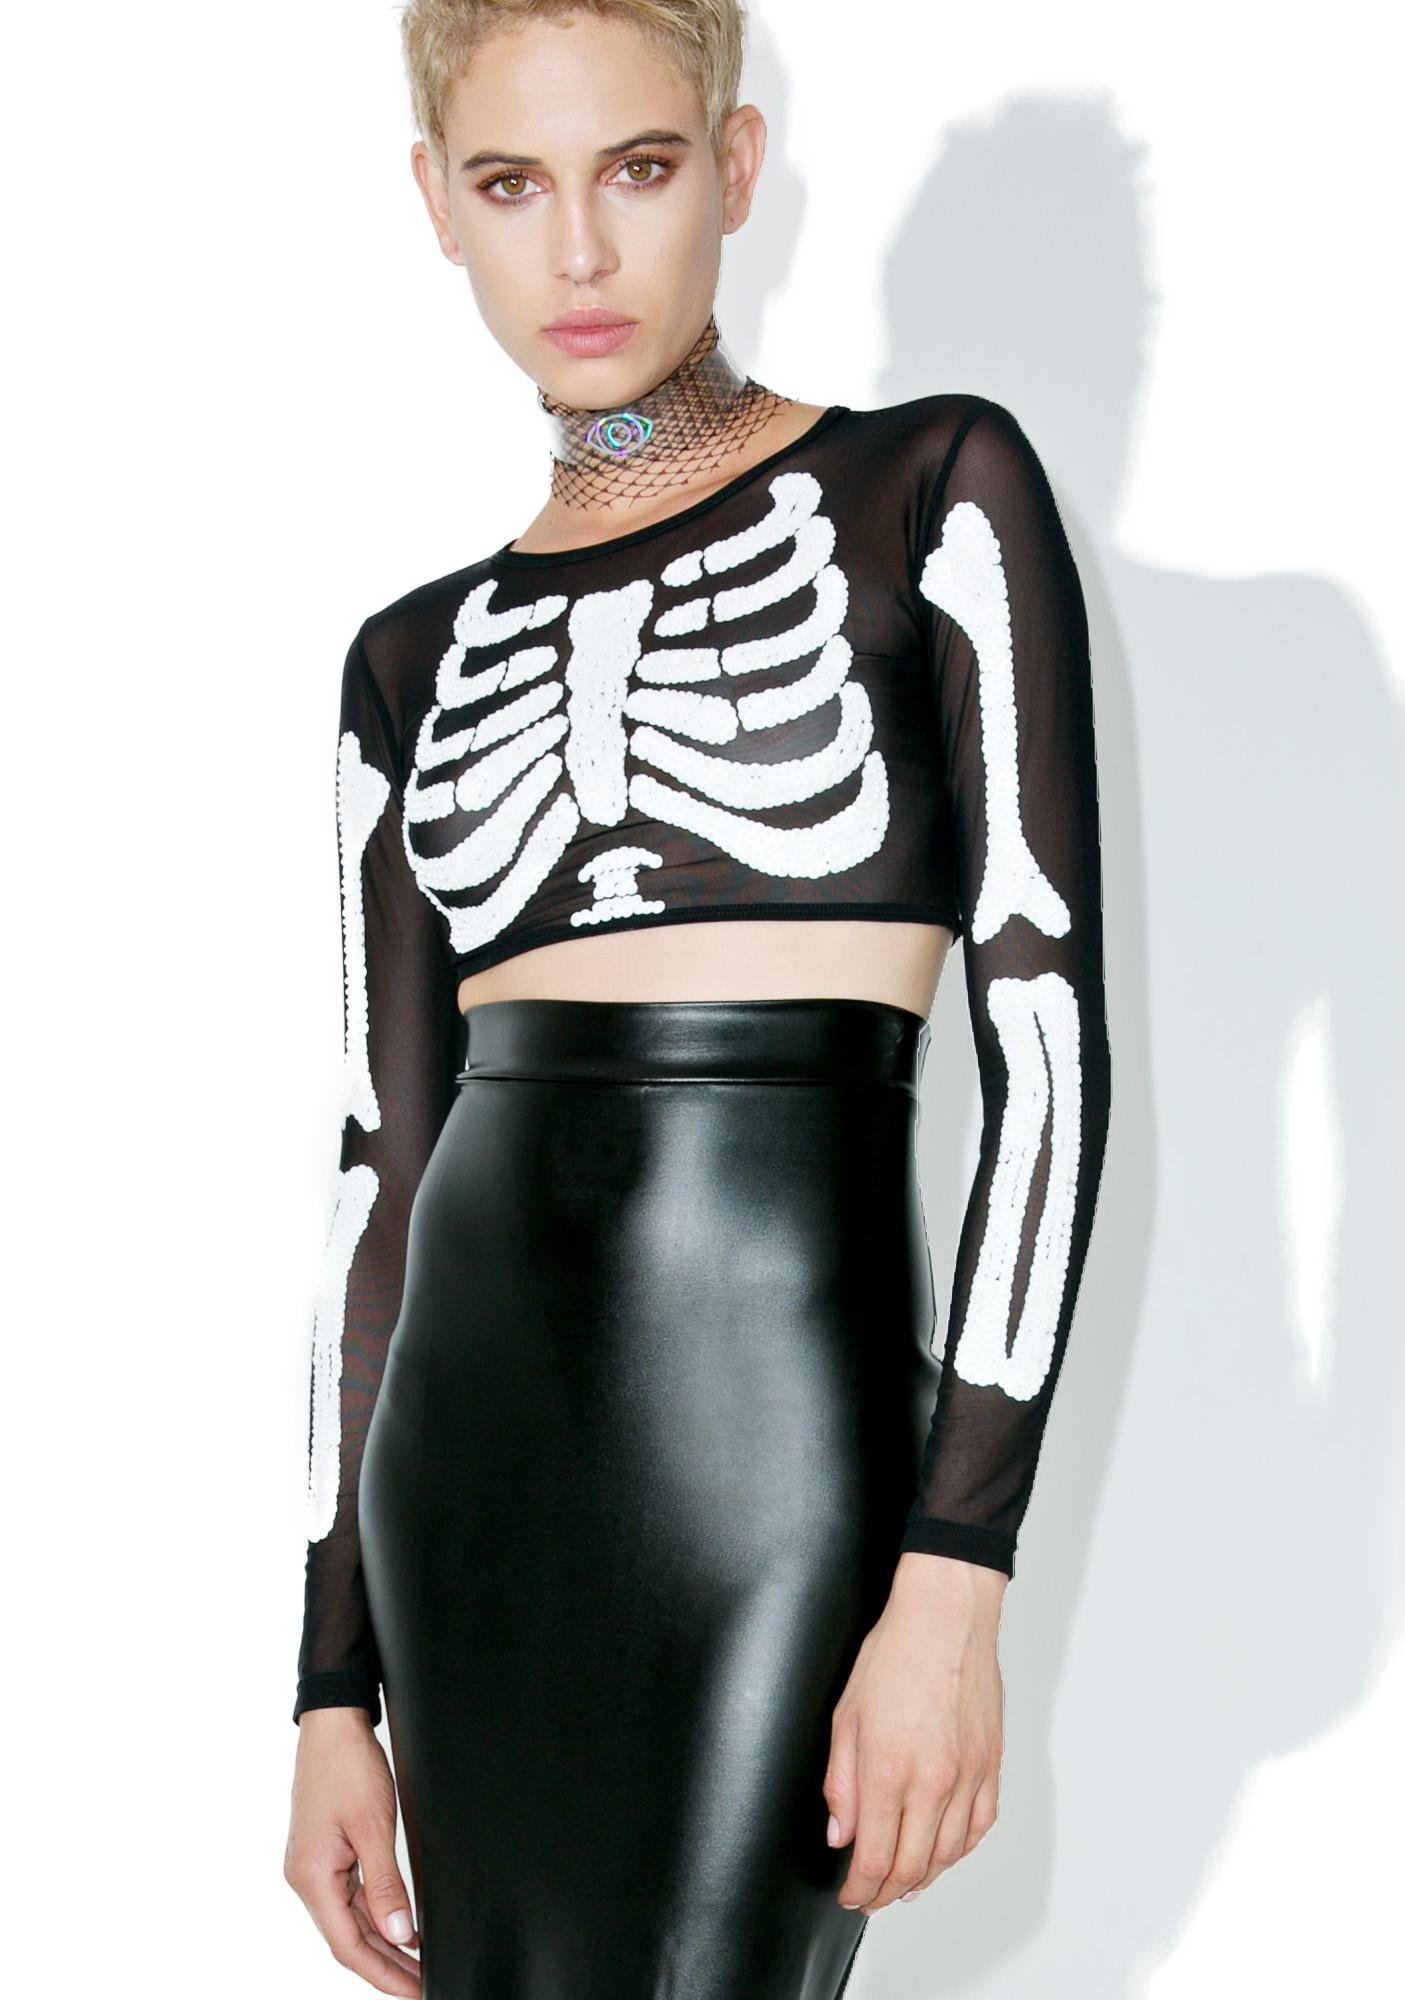 This Is A Love Song Vicious Sparkle Death Crop Top